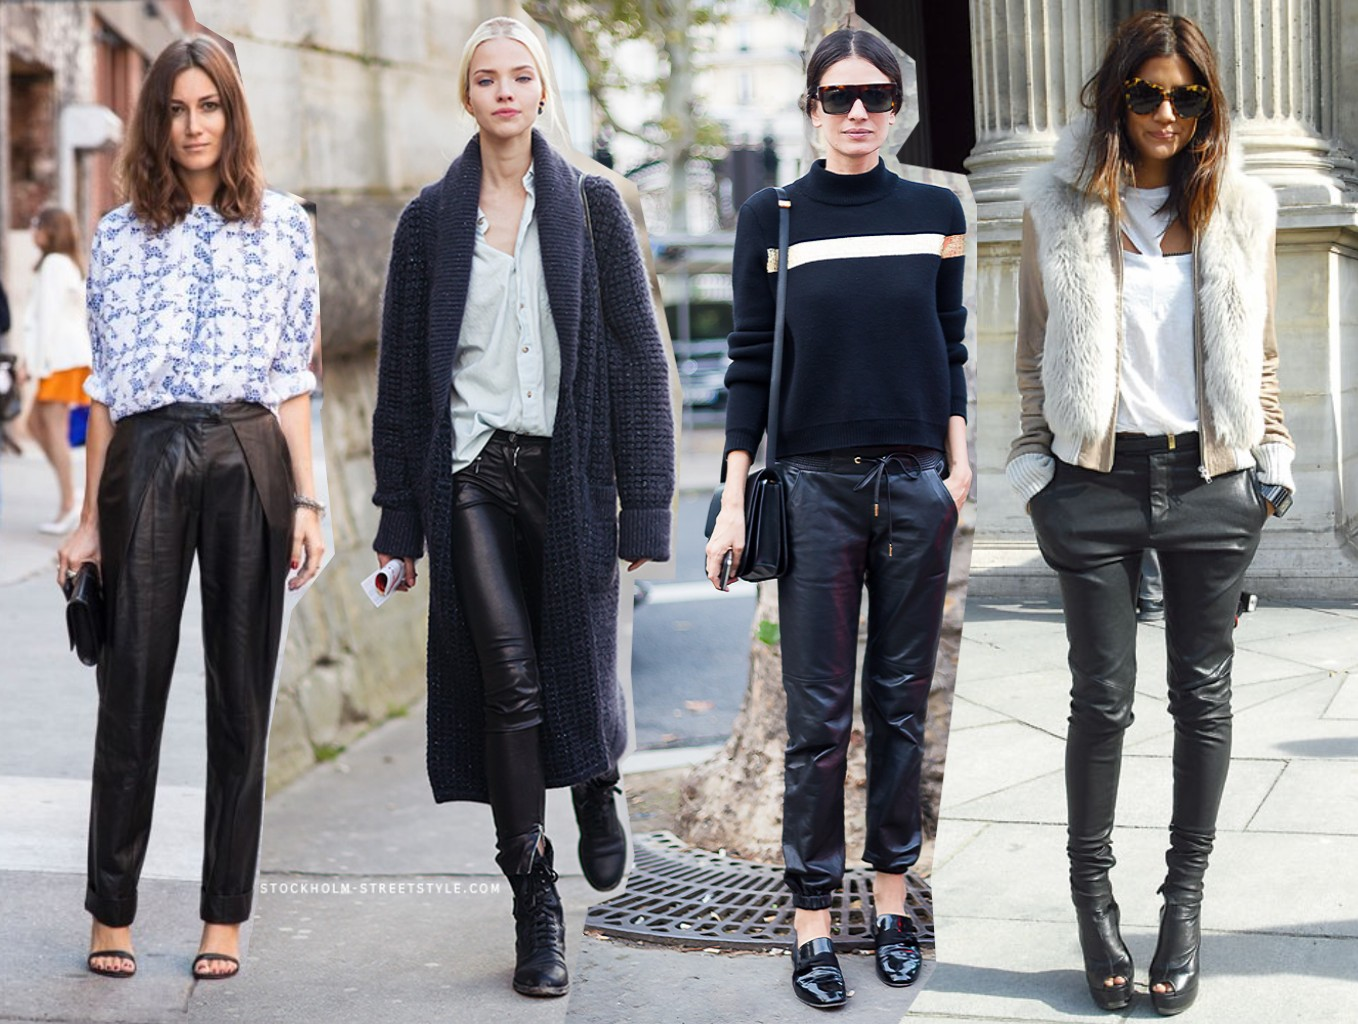 Ways To Wear The Leather Trousers Trend